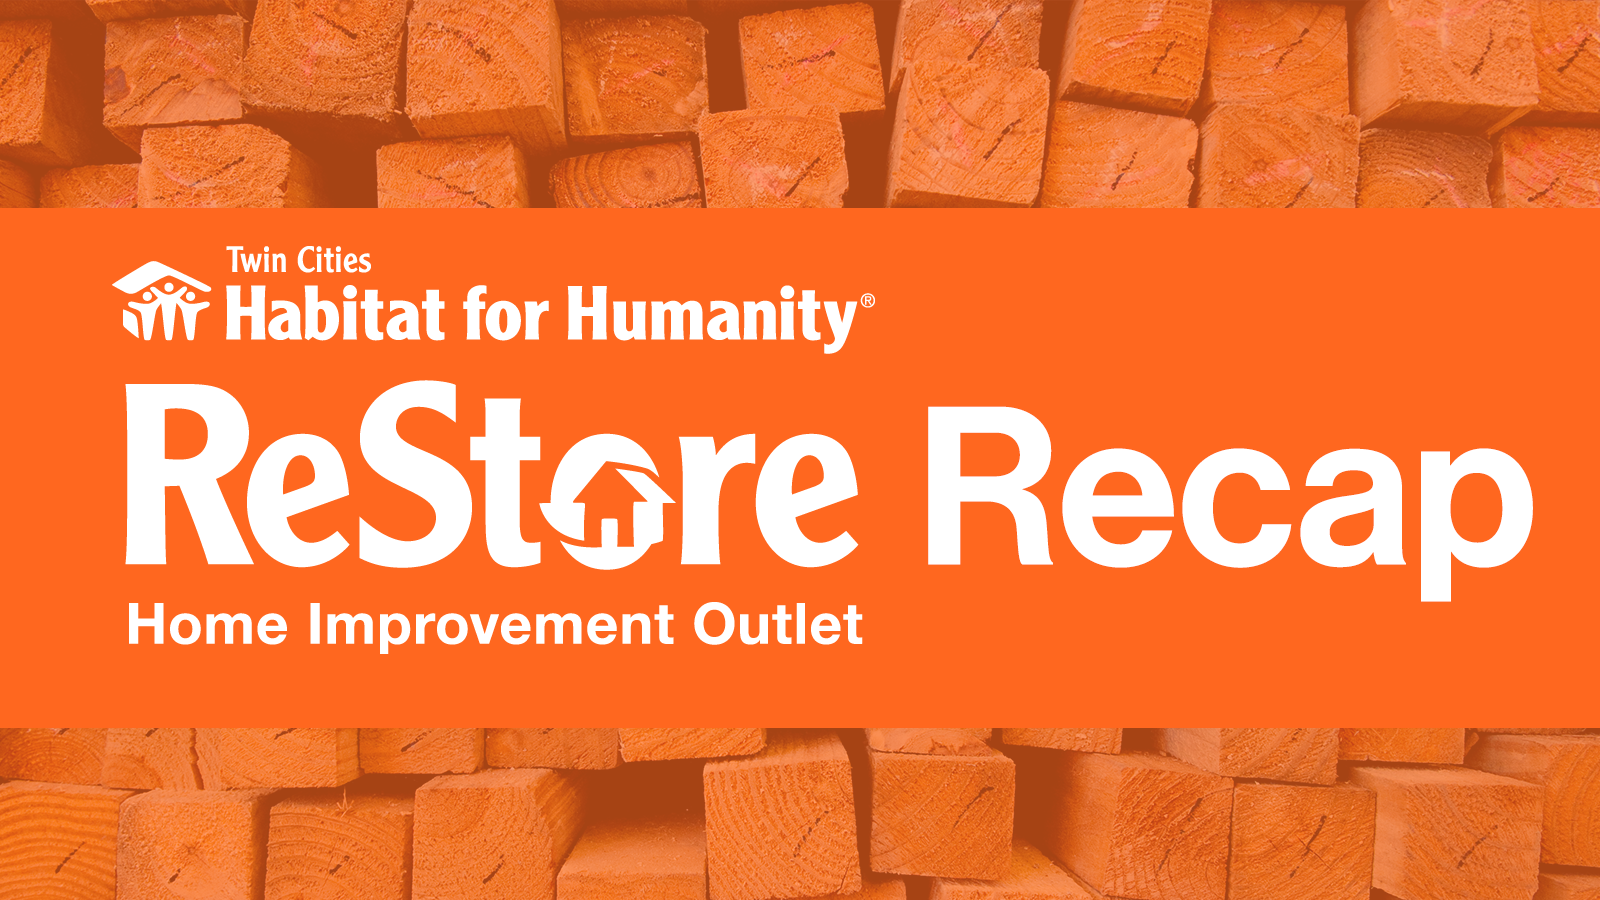 ReStore Recap: Finding Your Next DIY Inspiration and Making an Impact